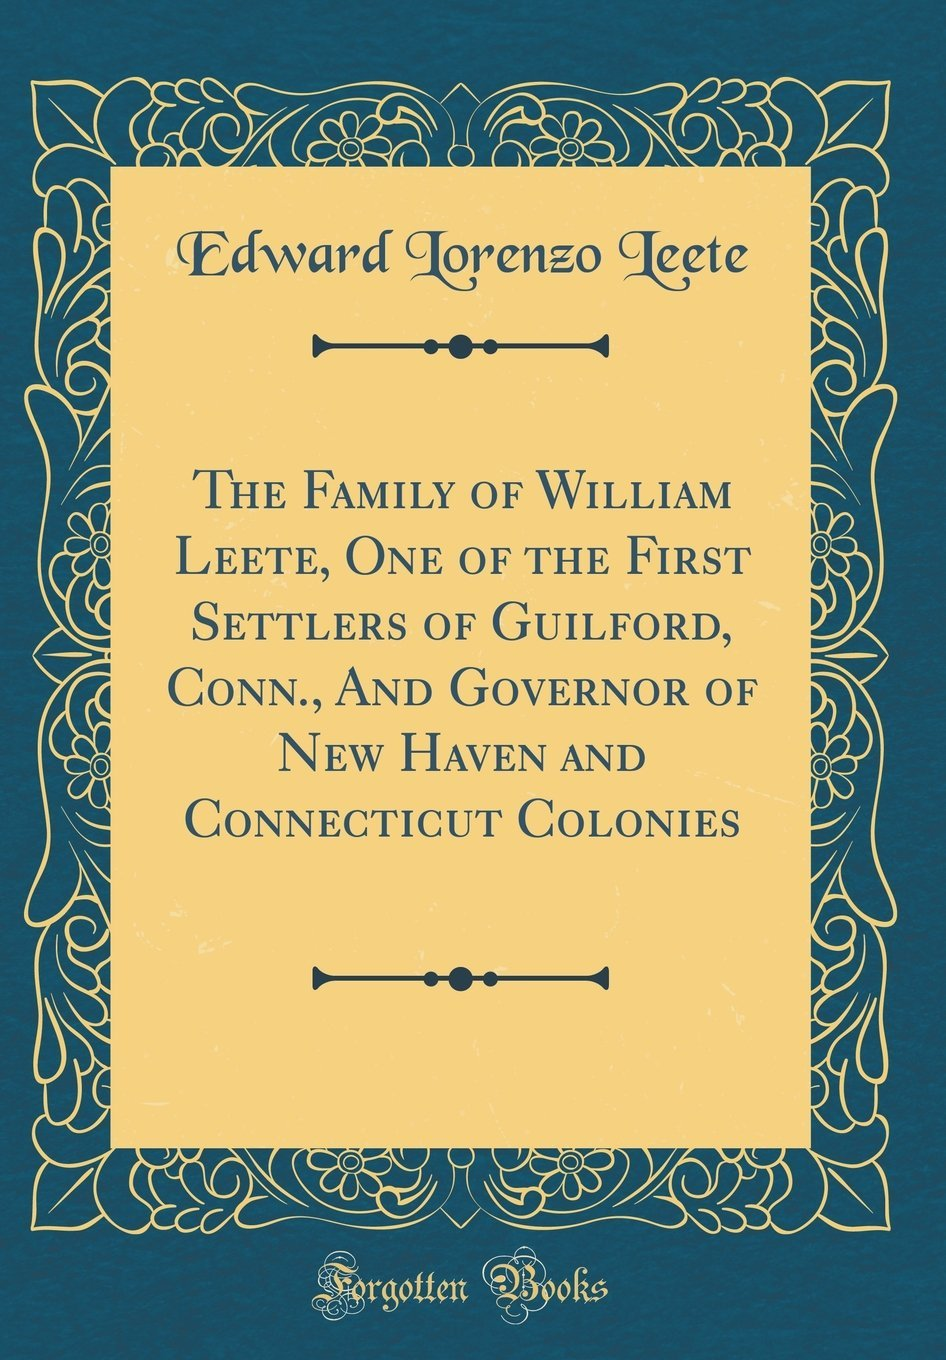 The Family of William Leete, One of the First Settlers of Guilford, Conn., and Governor of New Haven and Connecticut Colonies (Classic Reprint) pdf